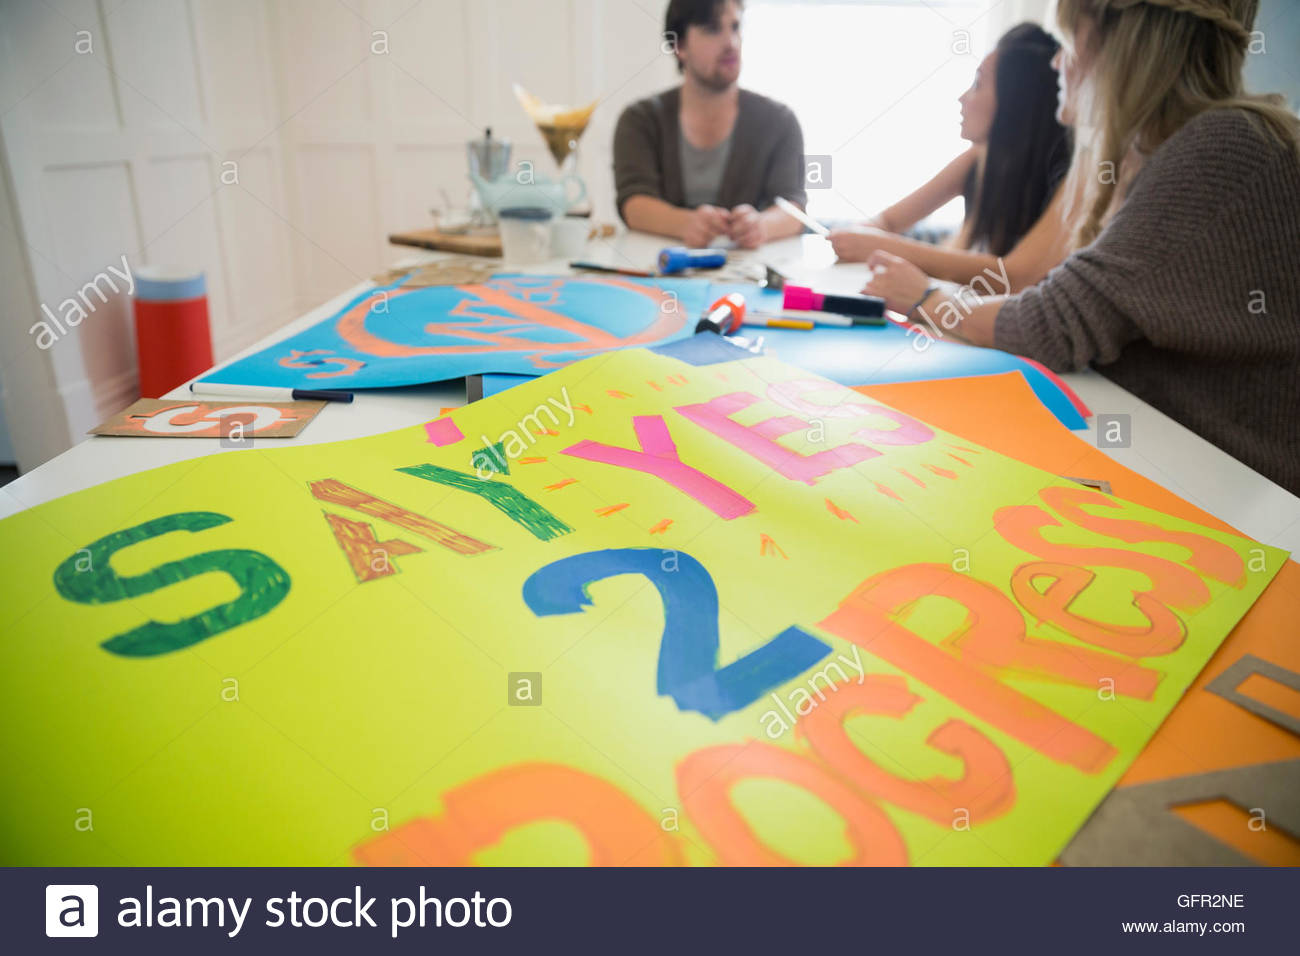 Young activists making posters in dining room - Stock Image